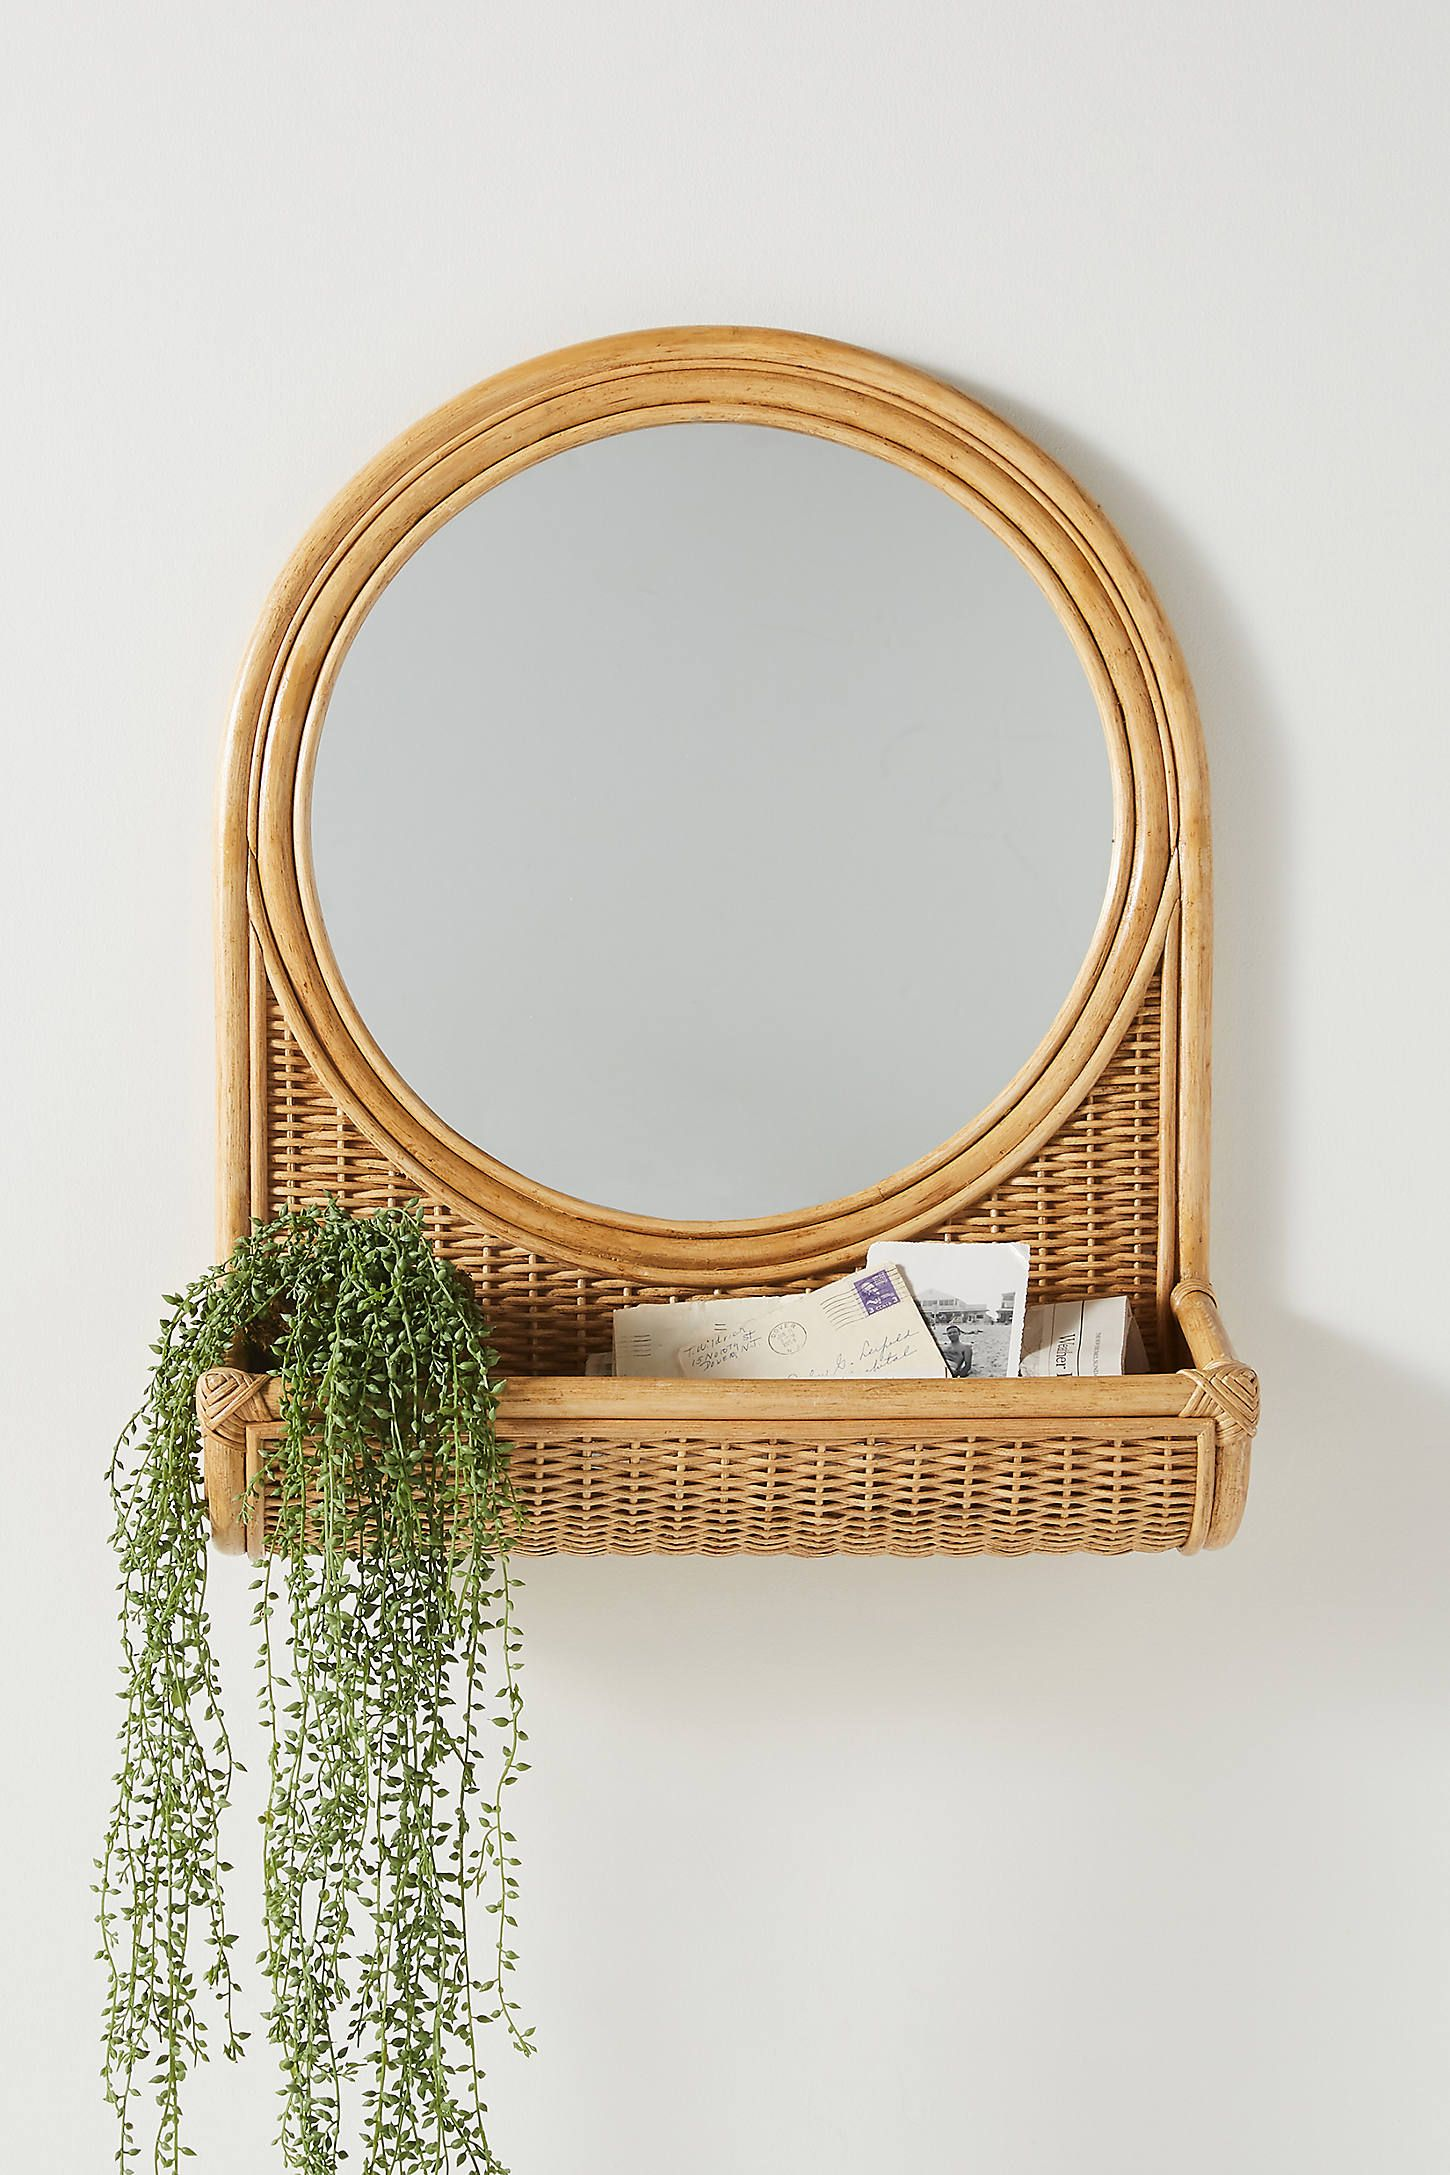 Hazel Round Rattan Mirror by Anthropologie in Beige, Wall Decor is part of Rattan mirror, Boho mirrors, Mirror decor, Bamboo mirror, Mirror wall decor, Unique mirrors - With a woven rattan frame and a convenient catchall basket attached, this mirror offers both function and texture to an entryway or a living space